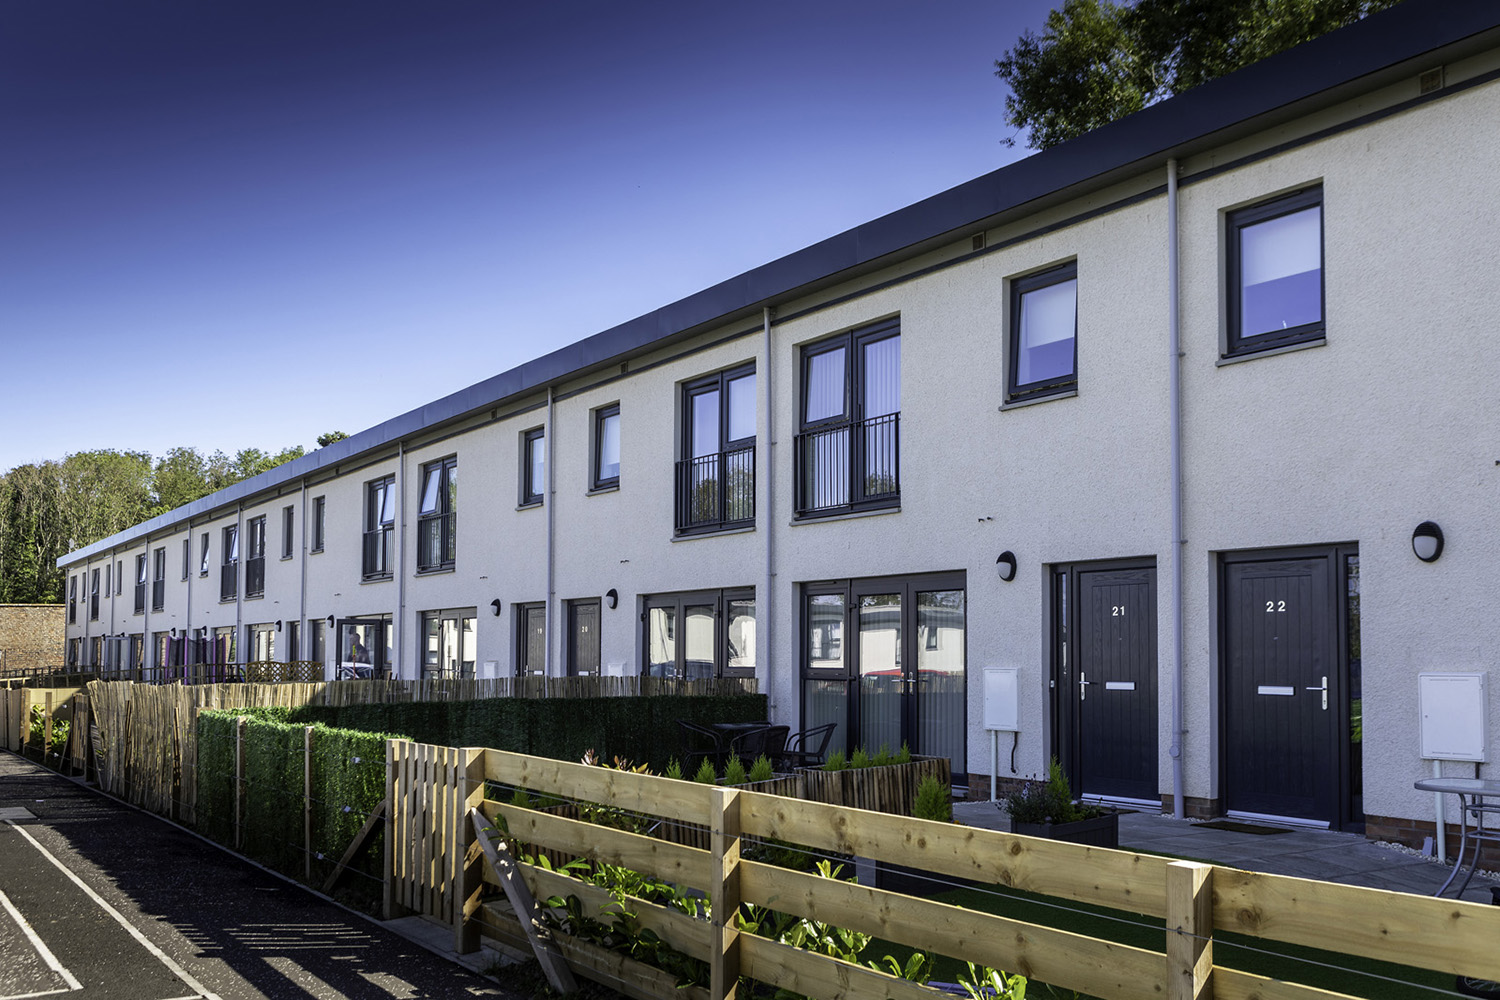 Spectus Elite 70 windows specified for affordable housing scheme